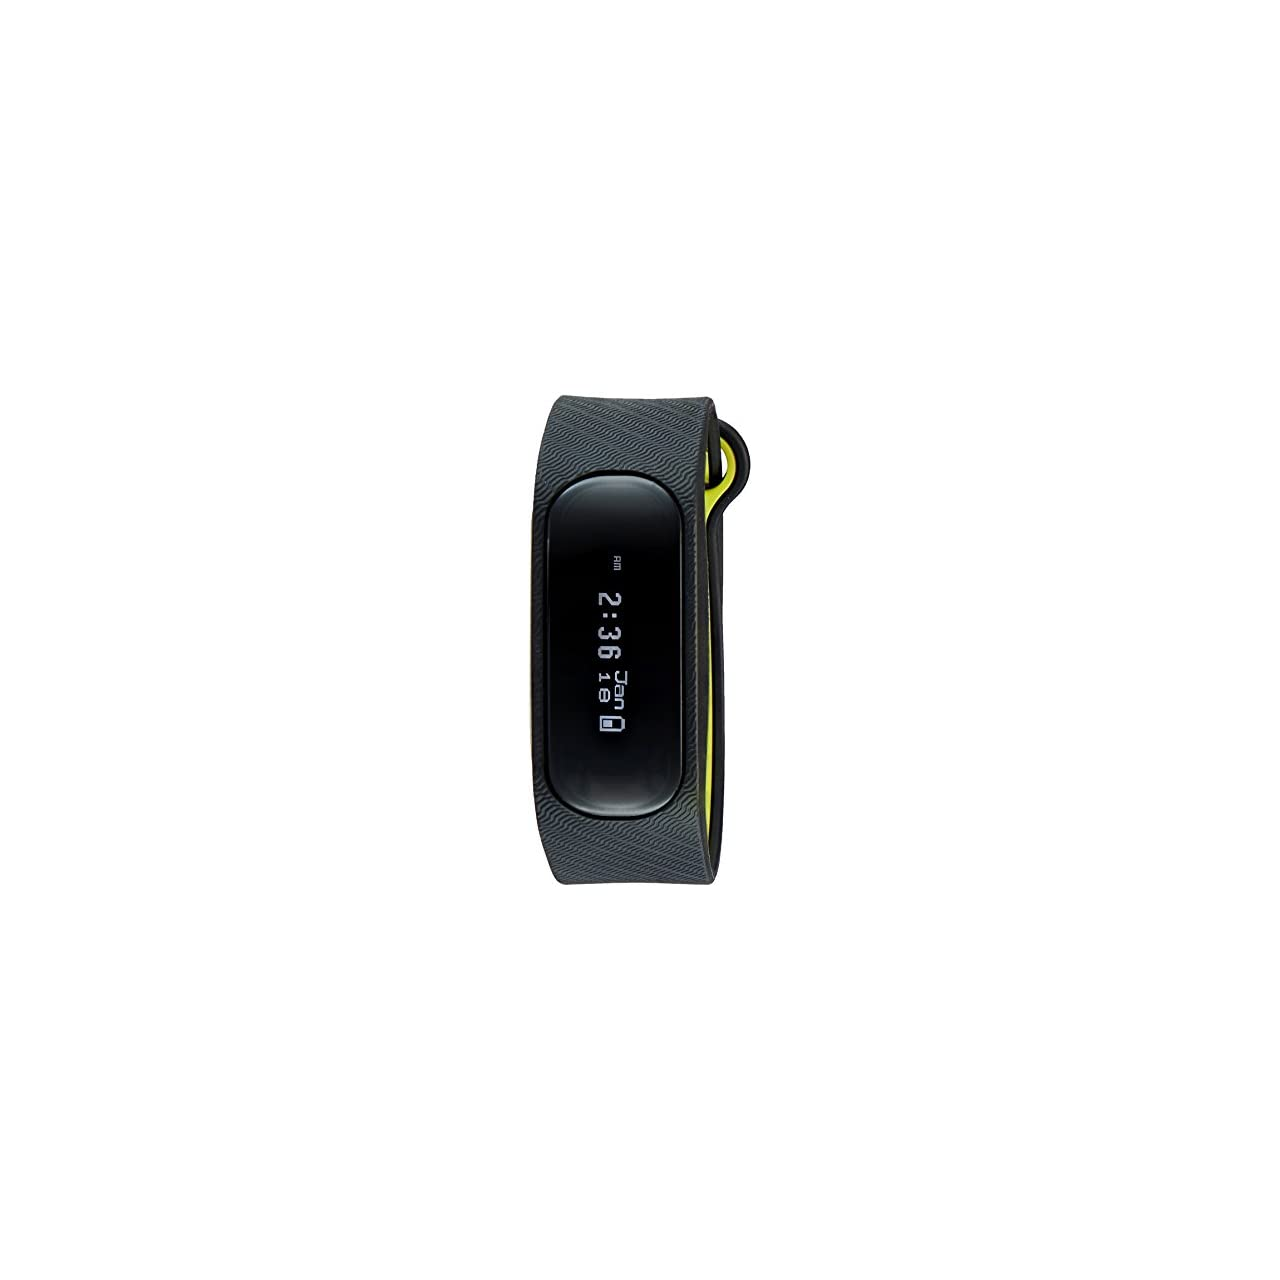 Fastrack Reflex Wav Smart band with Gesture control